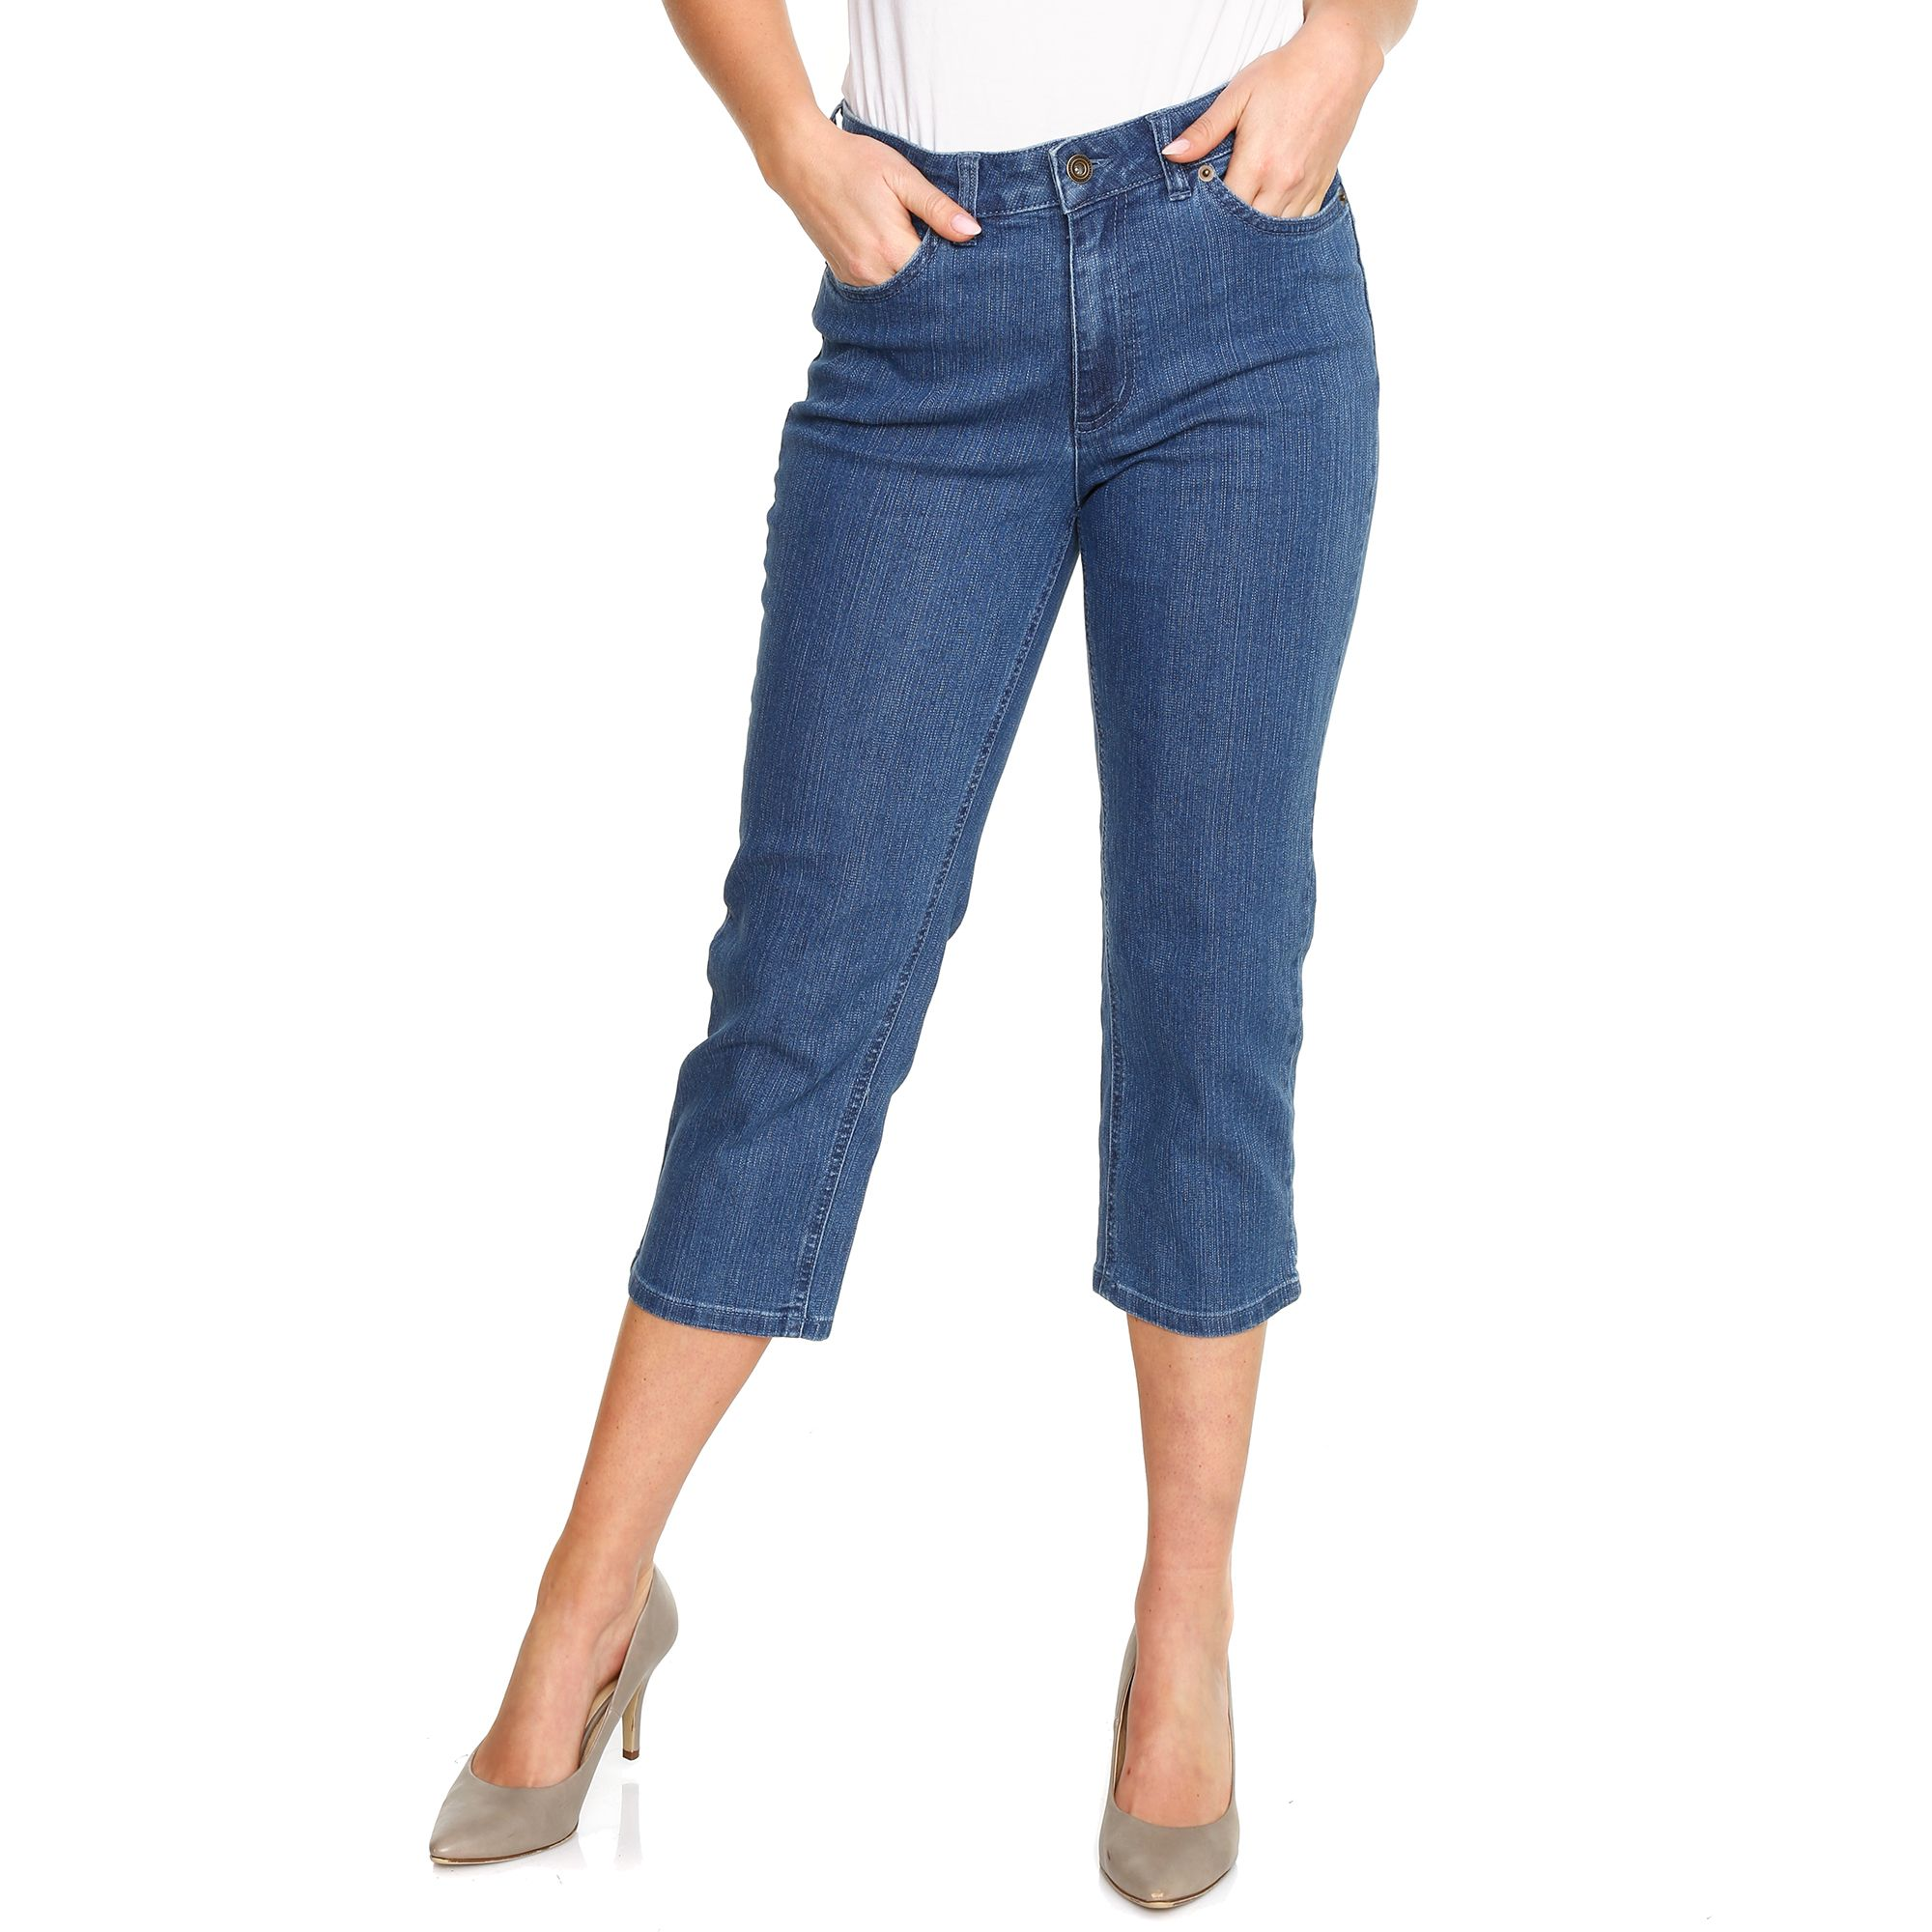 Qvc Garten Chic Denim And Co Jeanshose Dora 7 8 Länge 5 Pocket Style Page